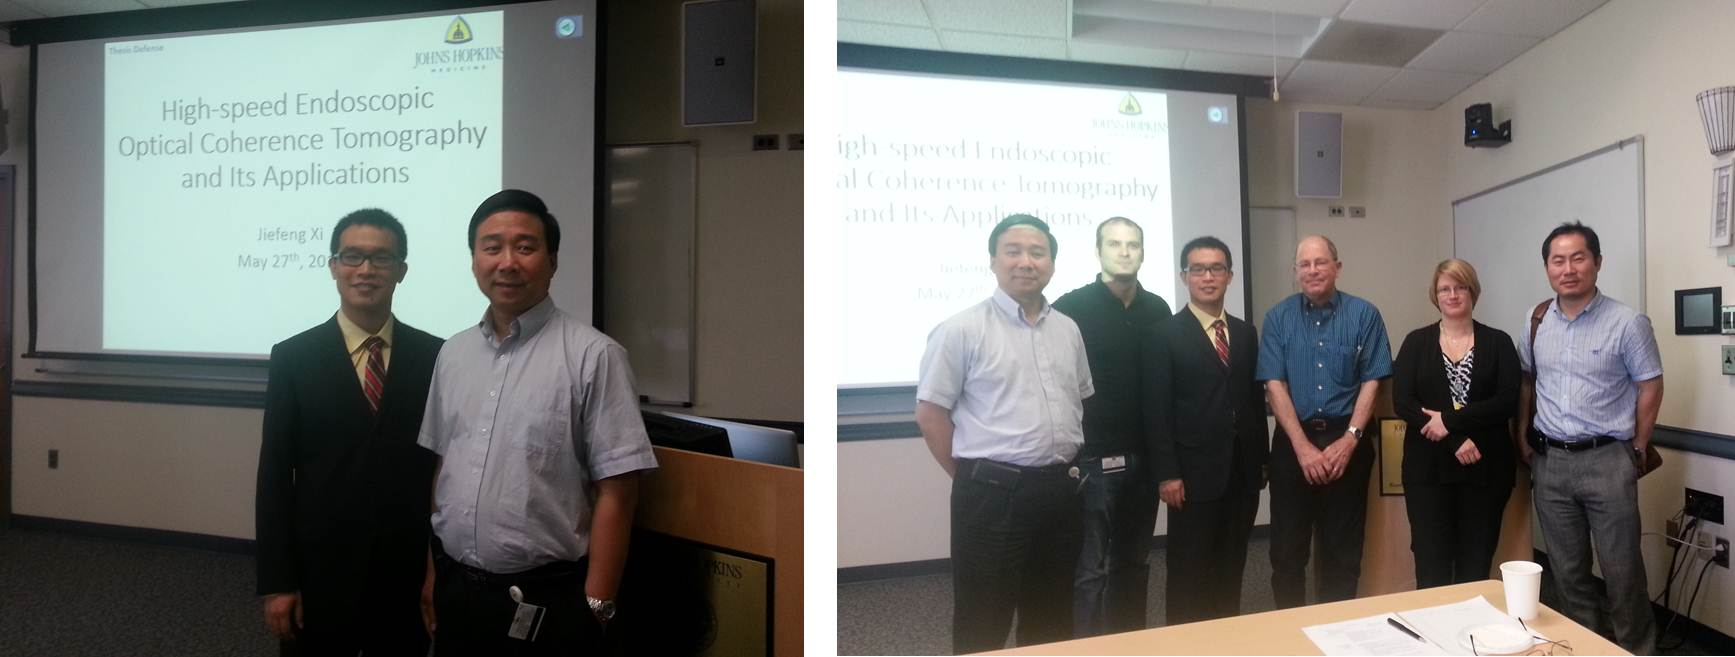 Dr. Jiefeng Xi with his PhD Defense Committee